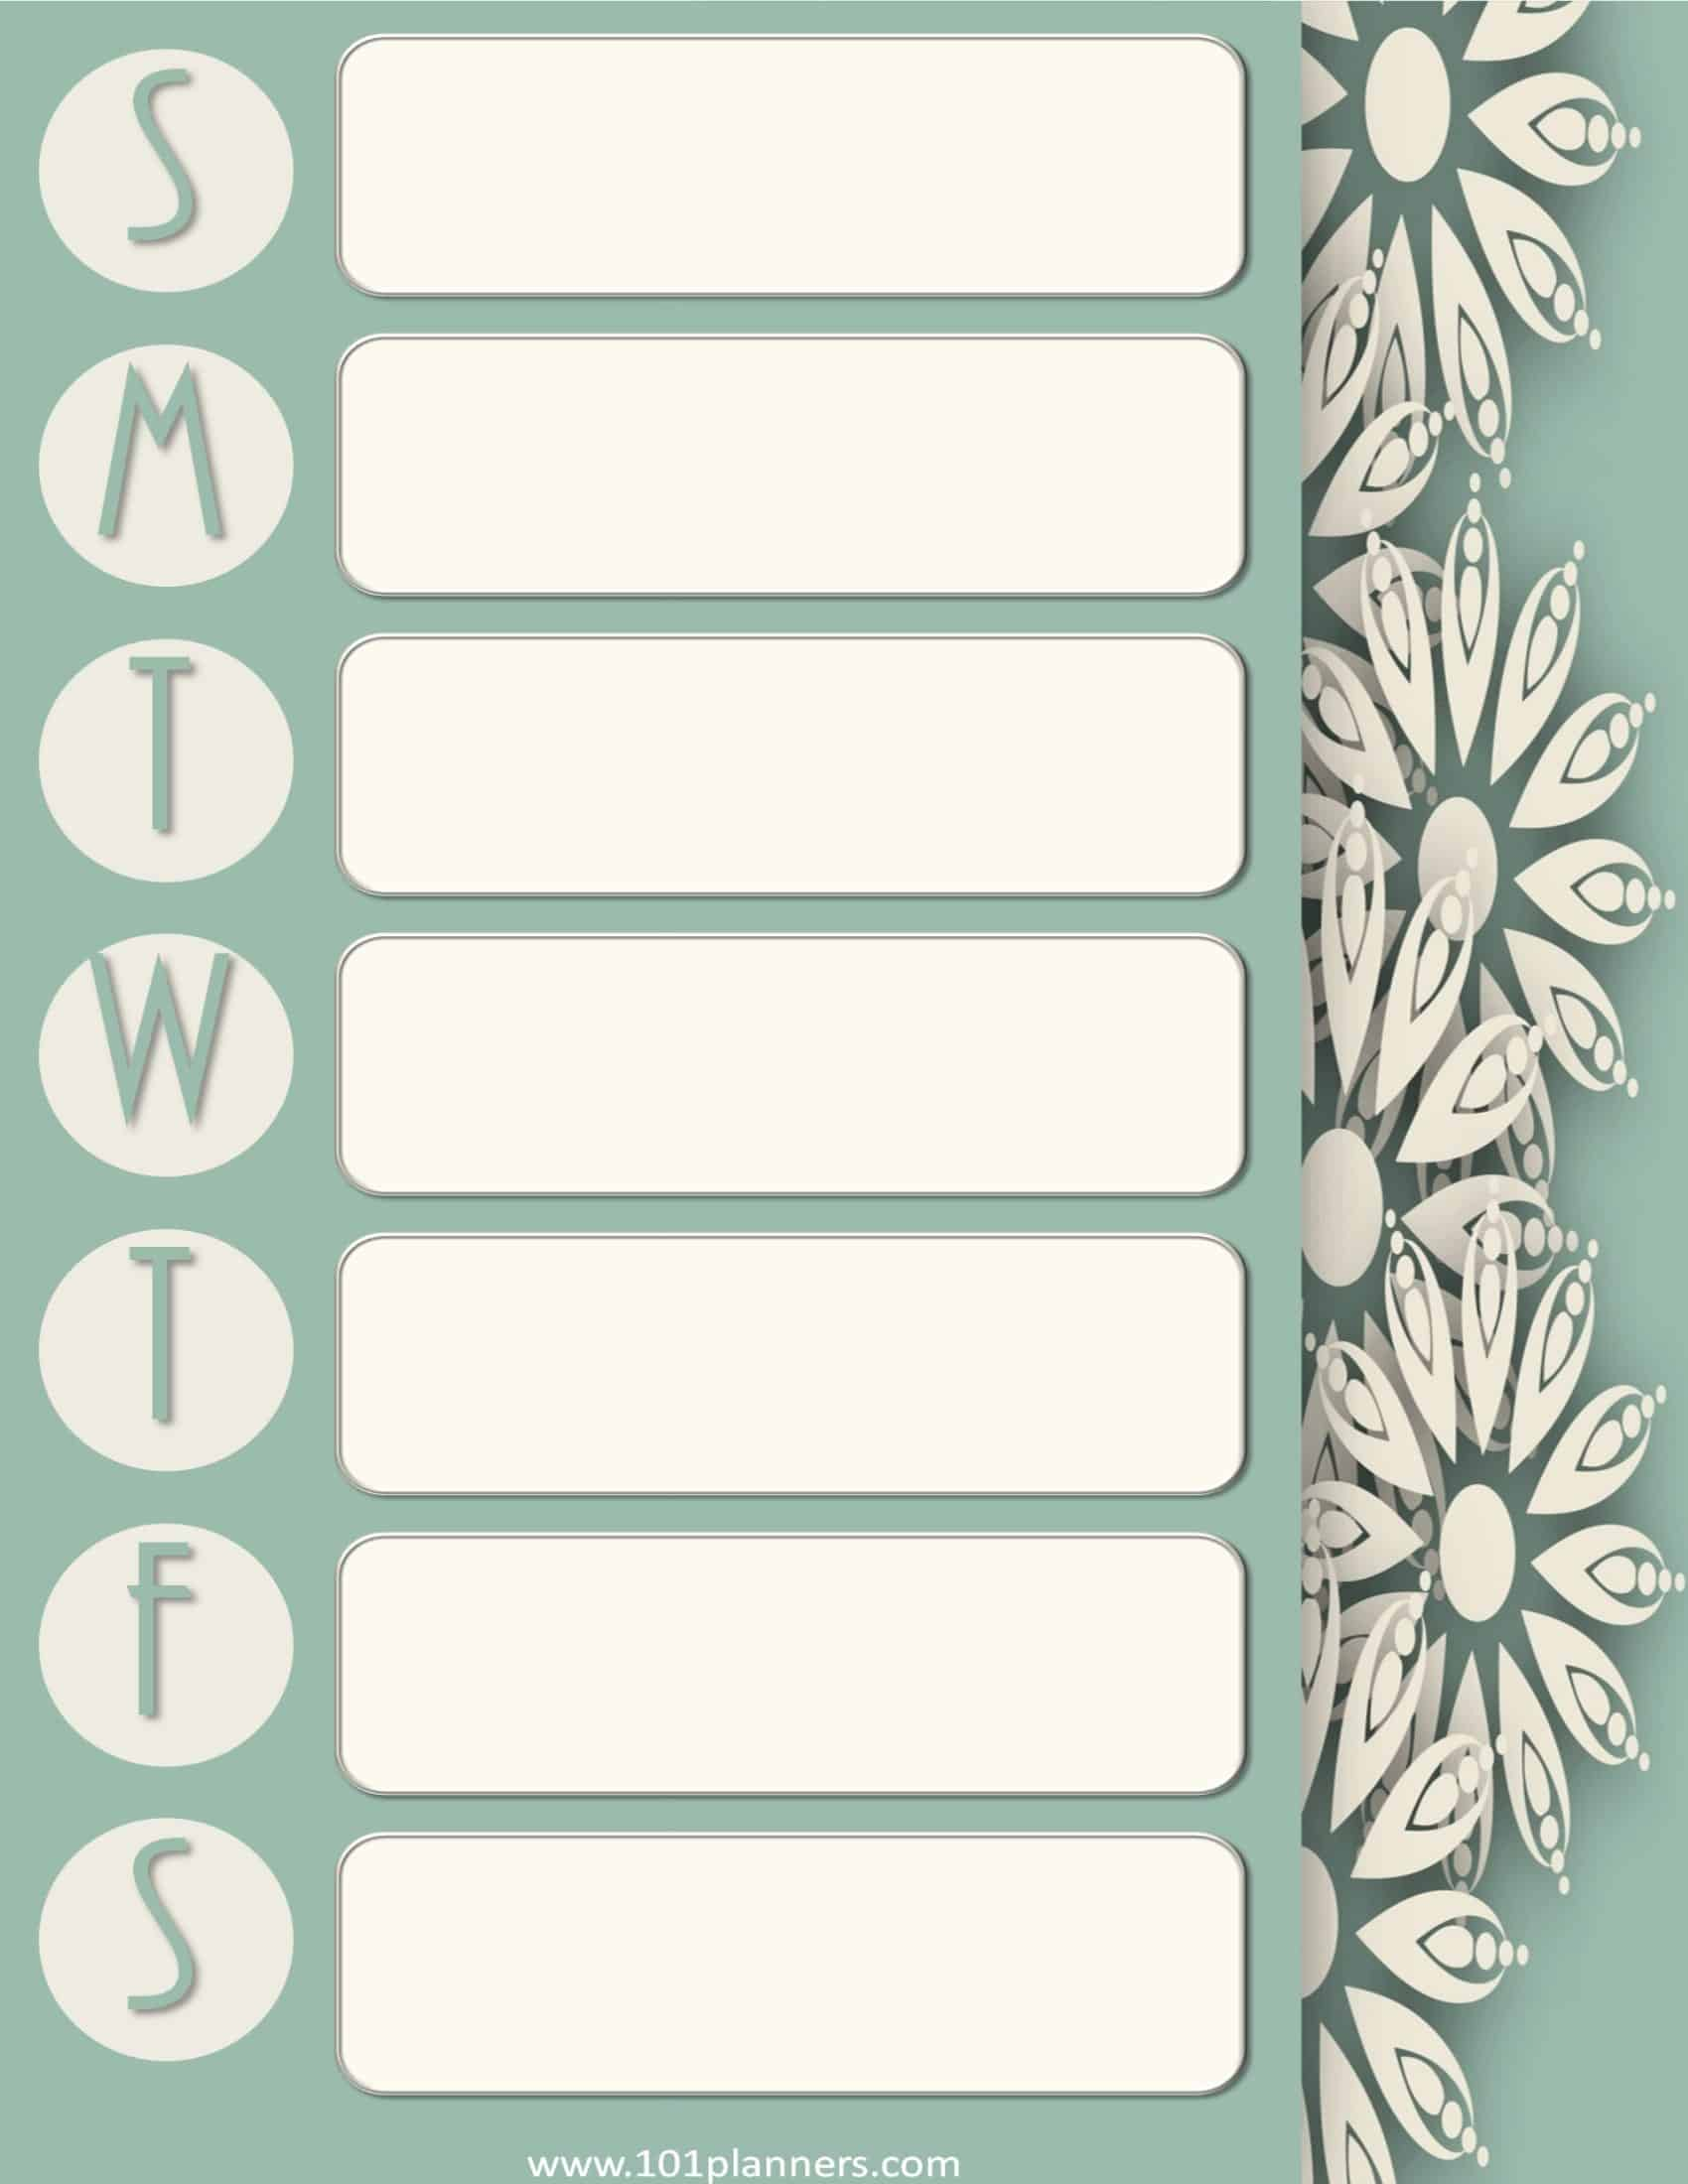 weekly appointment calendar office templates